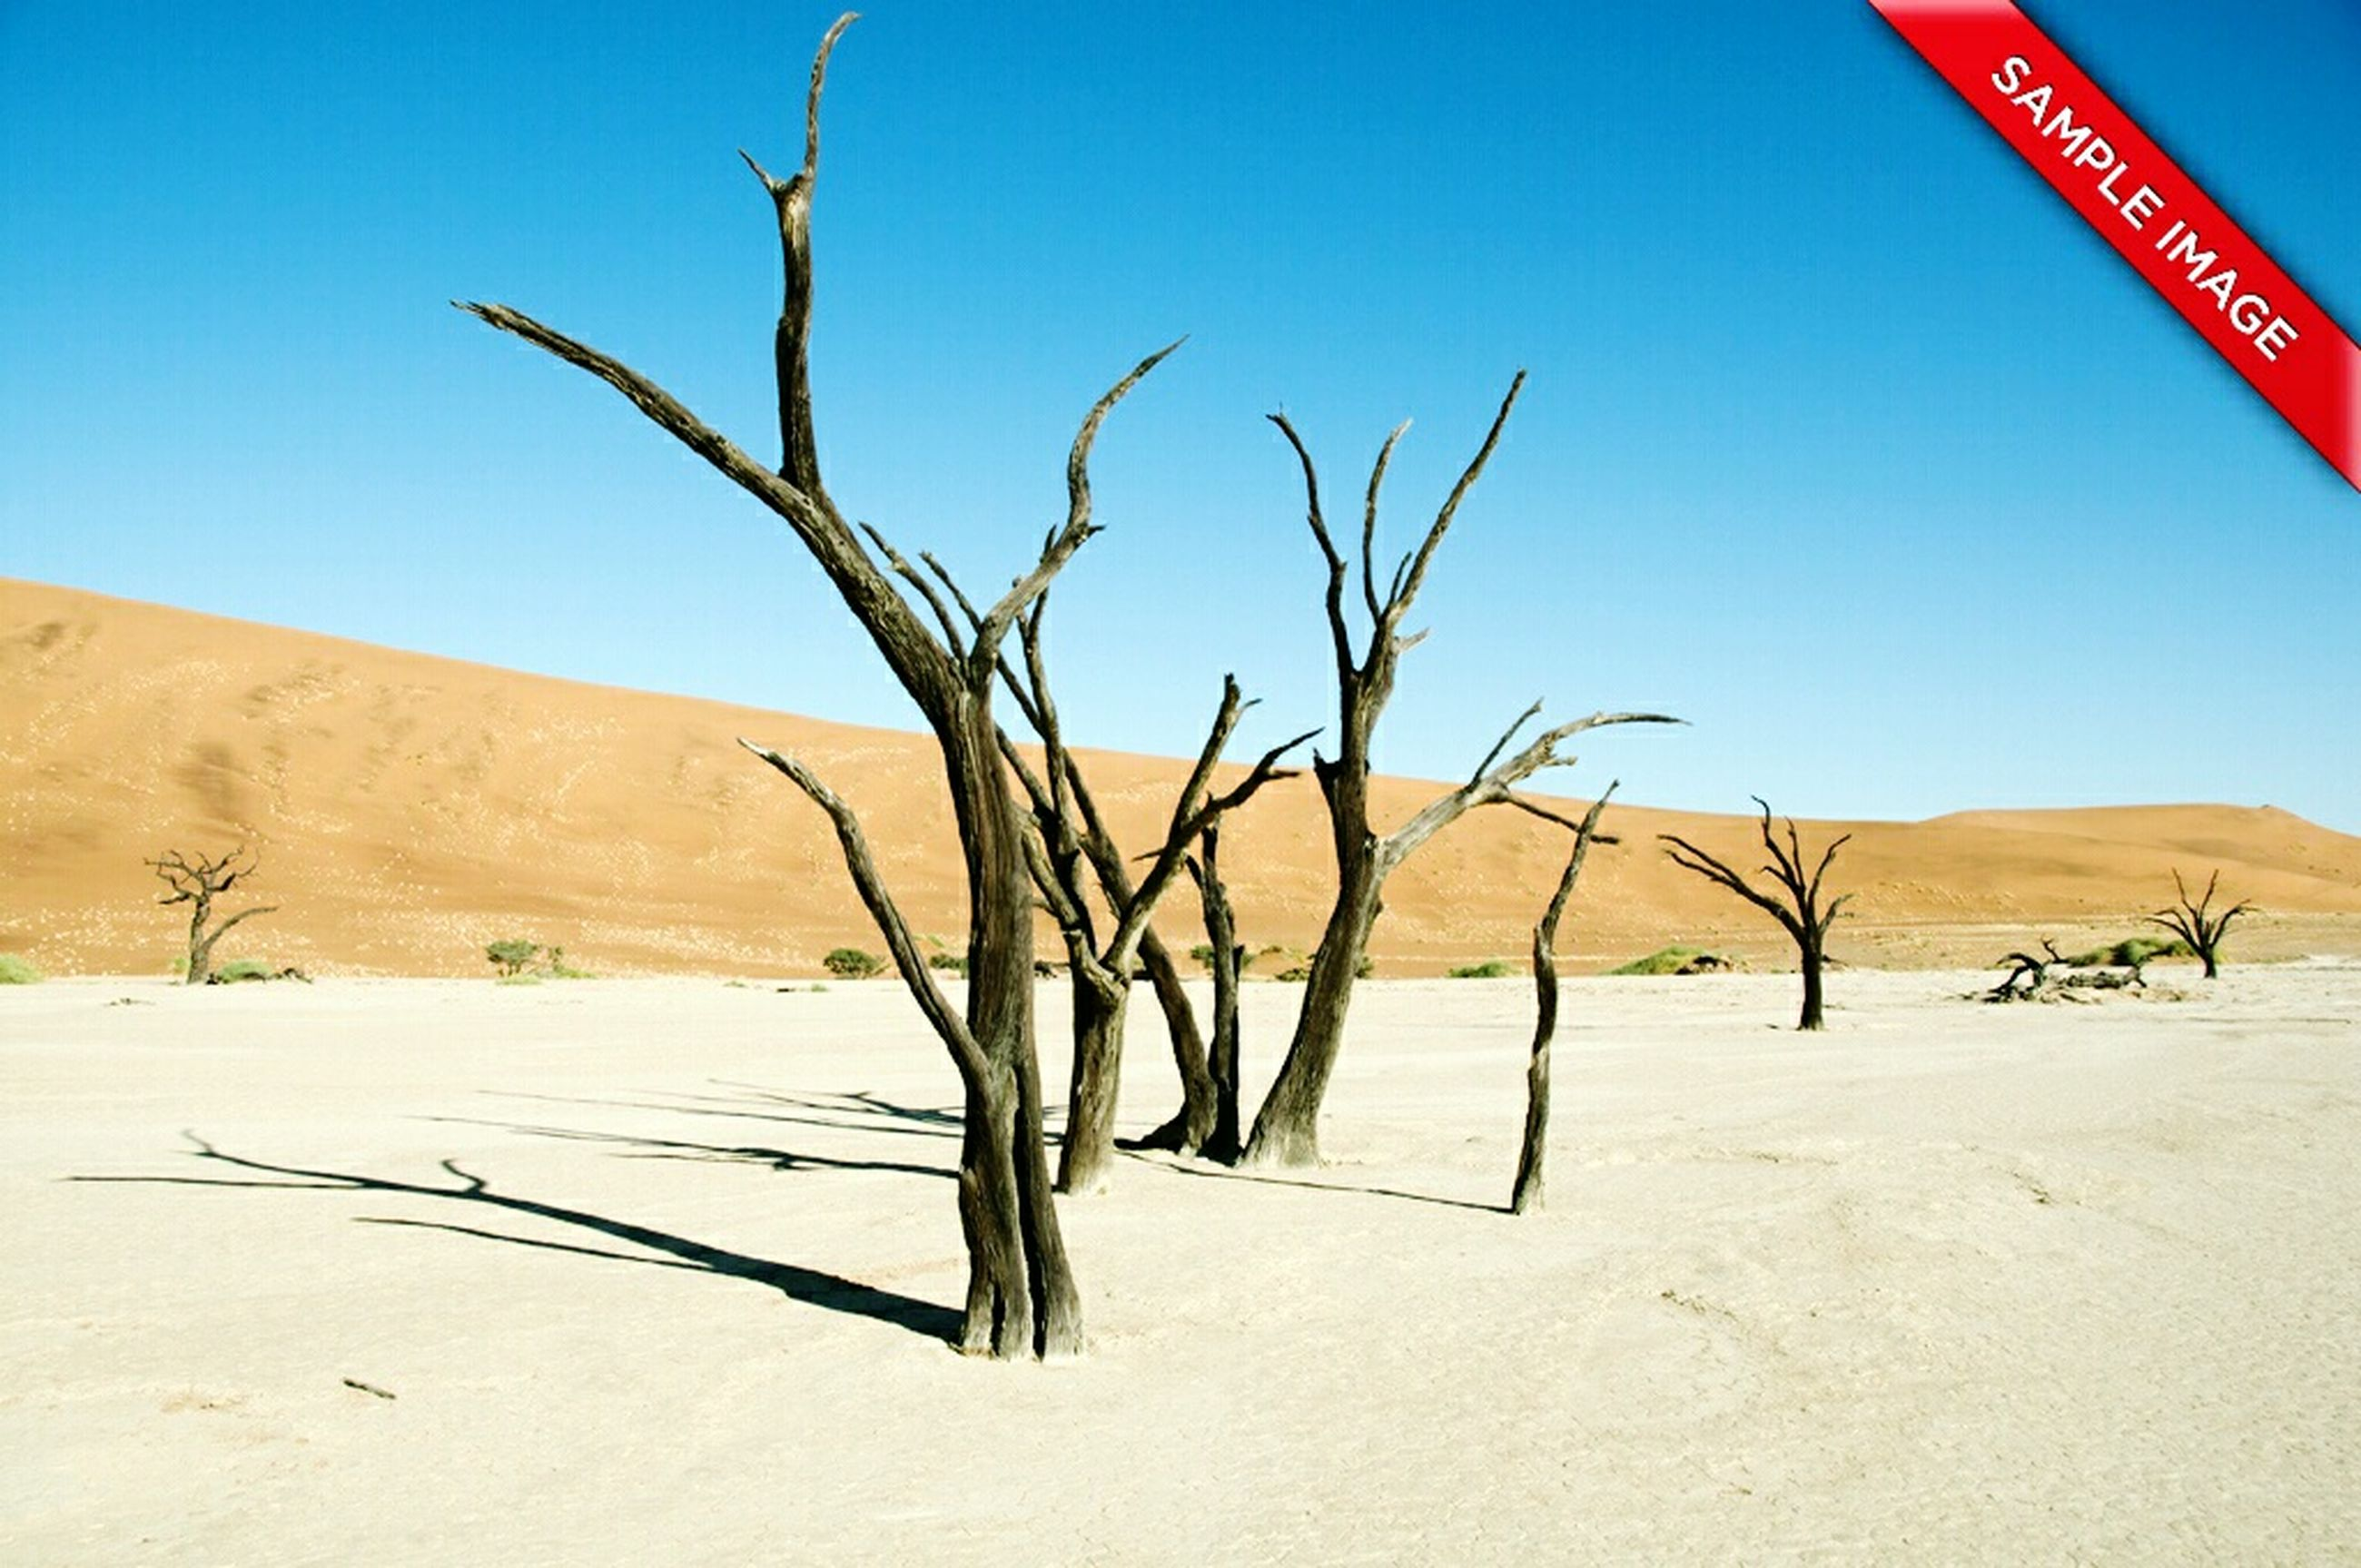 desert, clear sky, landscape, blue, arid climate, tranquility, sand, tranquil scene, nature, barren, sunlight, bare tree, copy space, remote, non-urban scene, day, tree, no people, sky, dry